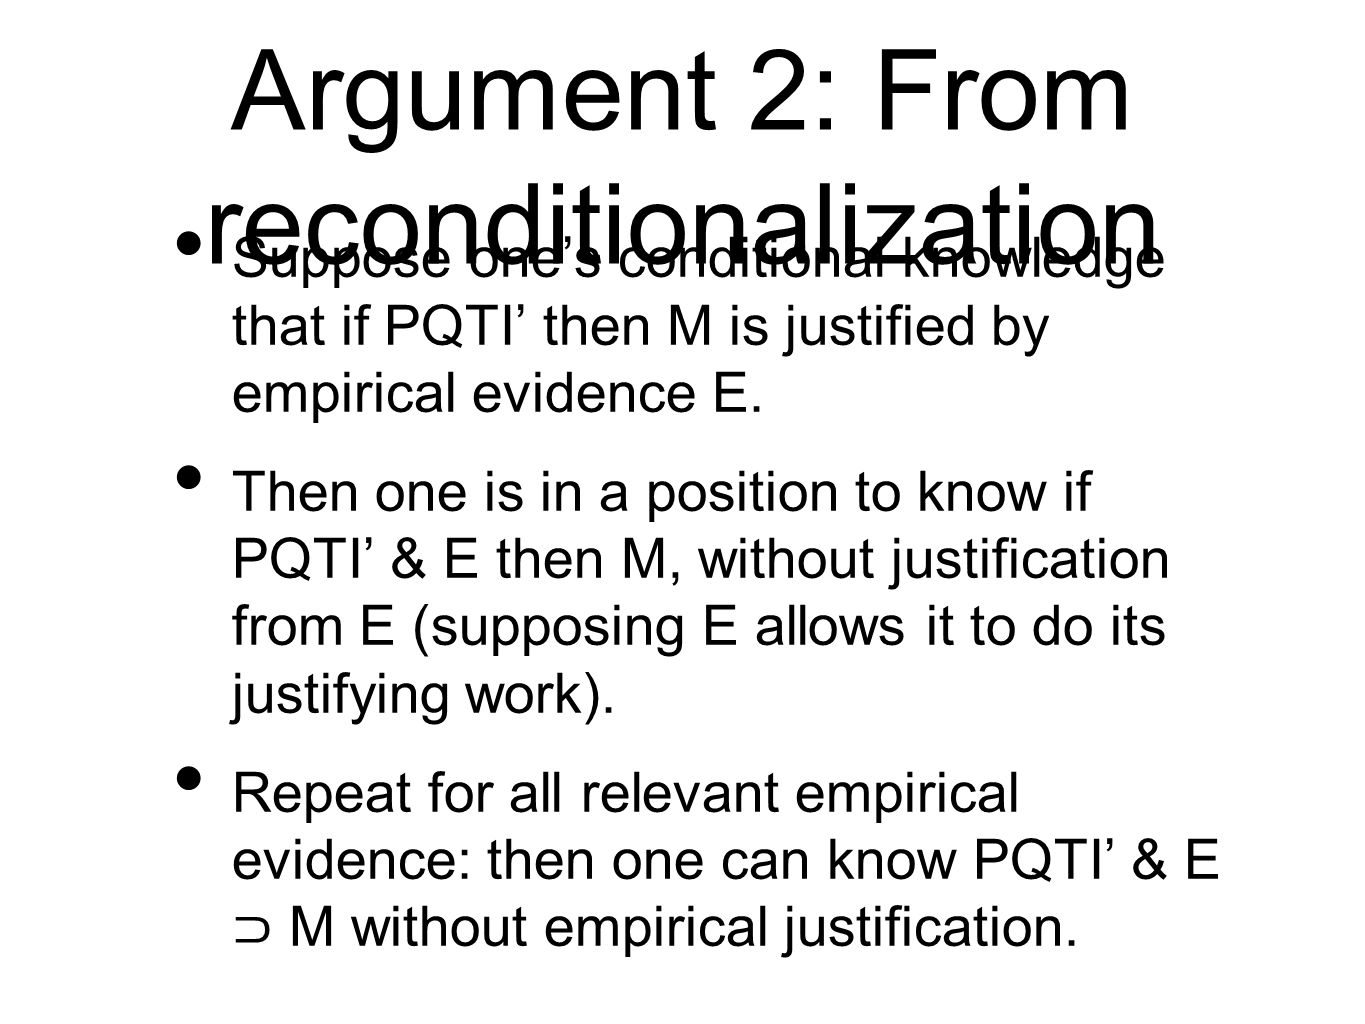 Argument 2: From reconditionalization Suppose ones conditional knowledge that if PQTI then M is justified by empirical evidence E.